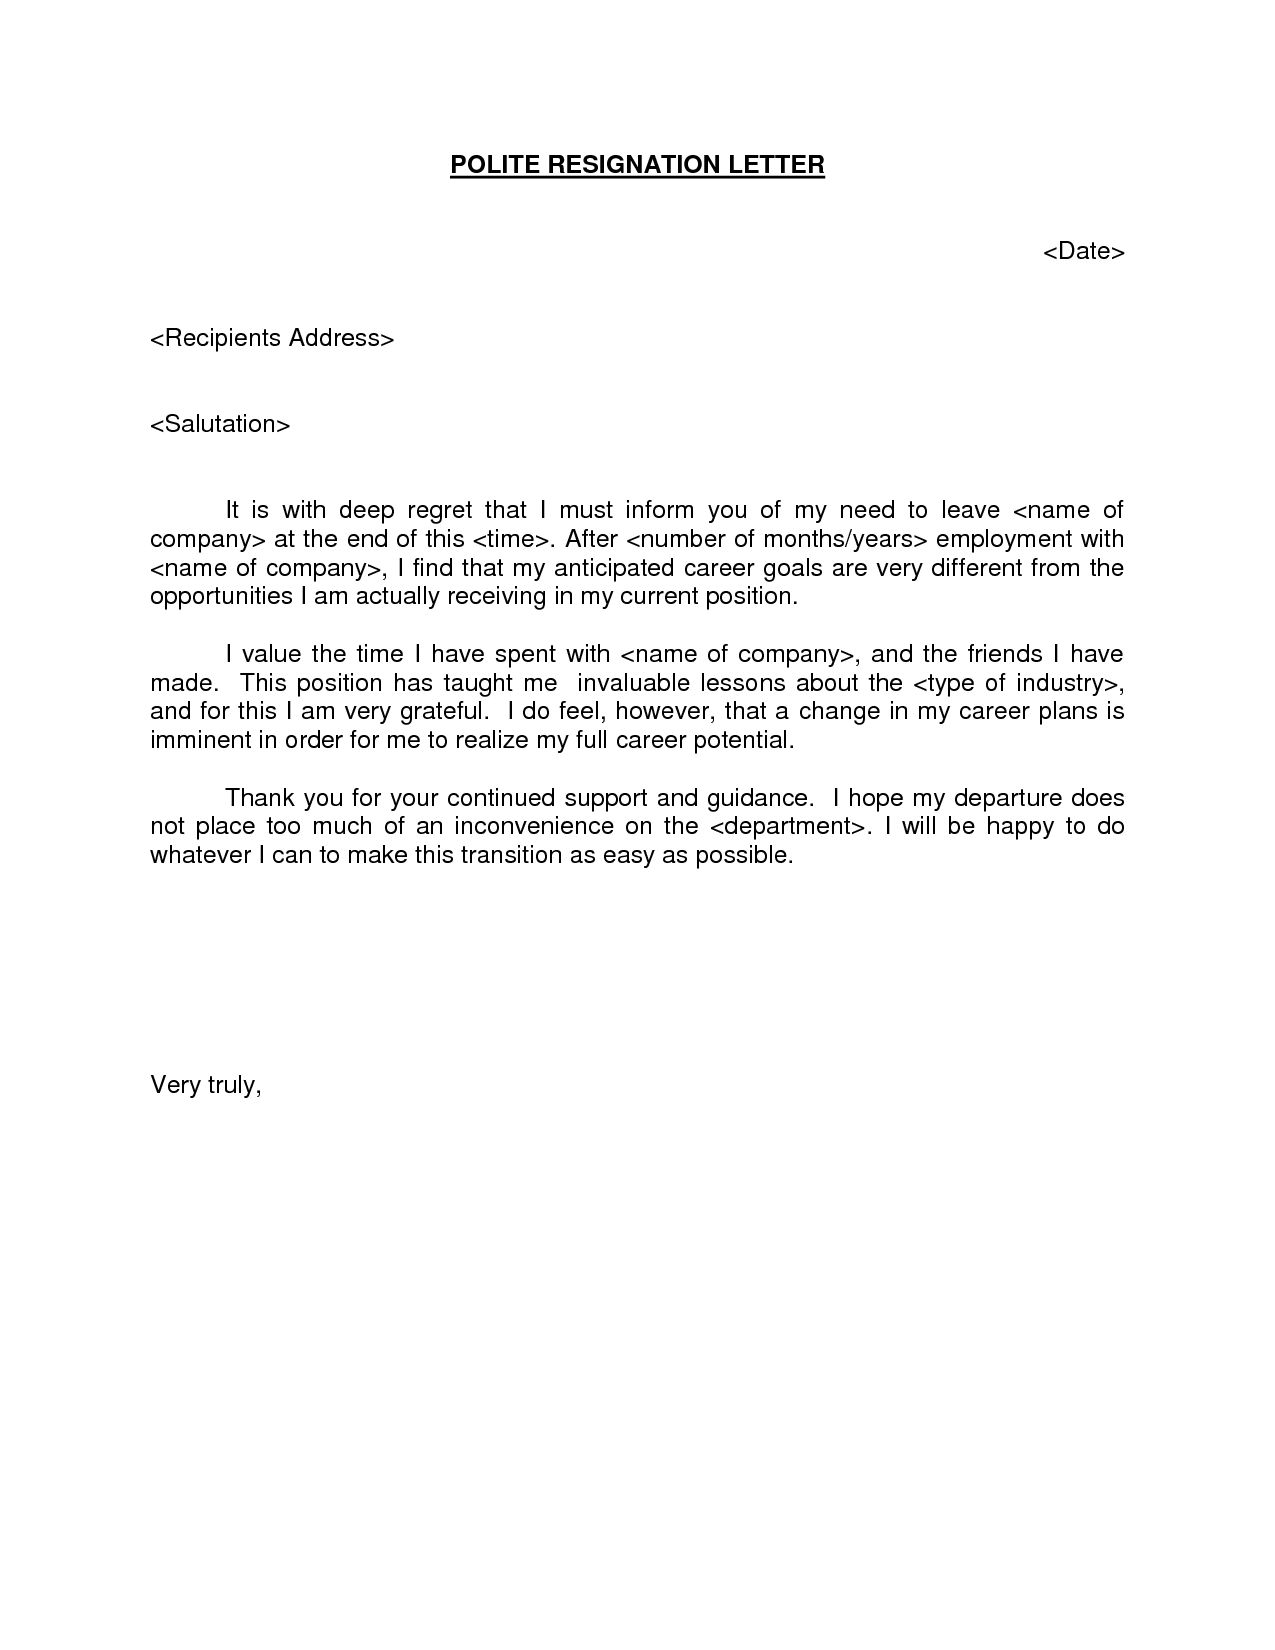 Free Resignation Letter Template Word - Polite Resignation Letter Bestdealformoneywriting A Letter